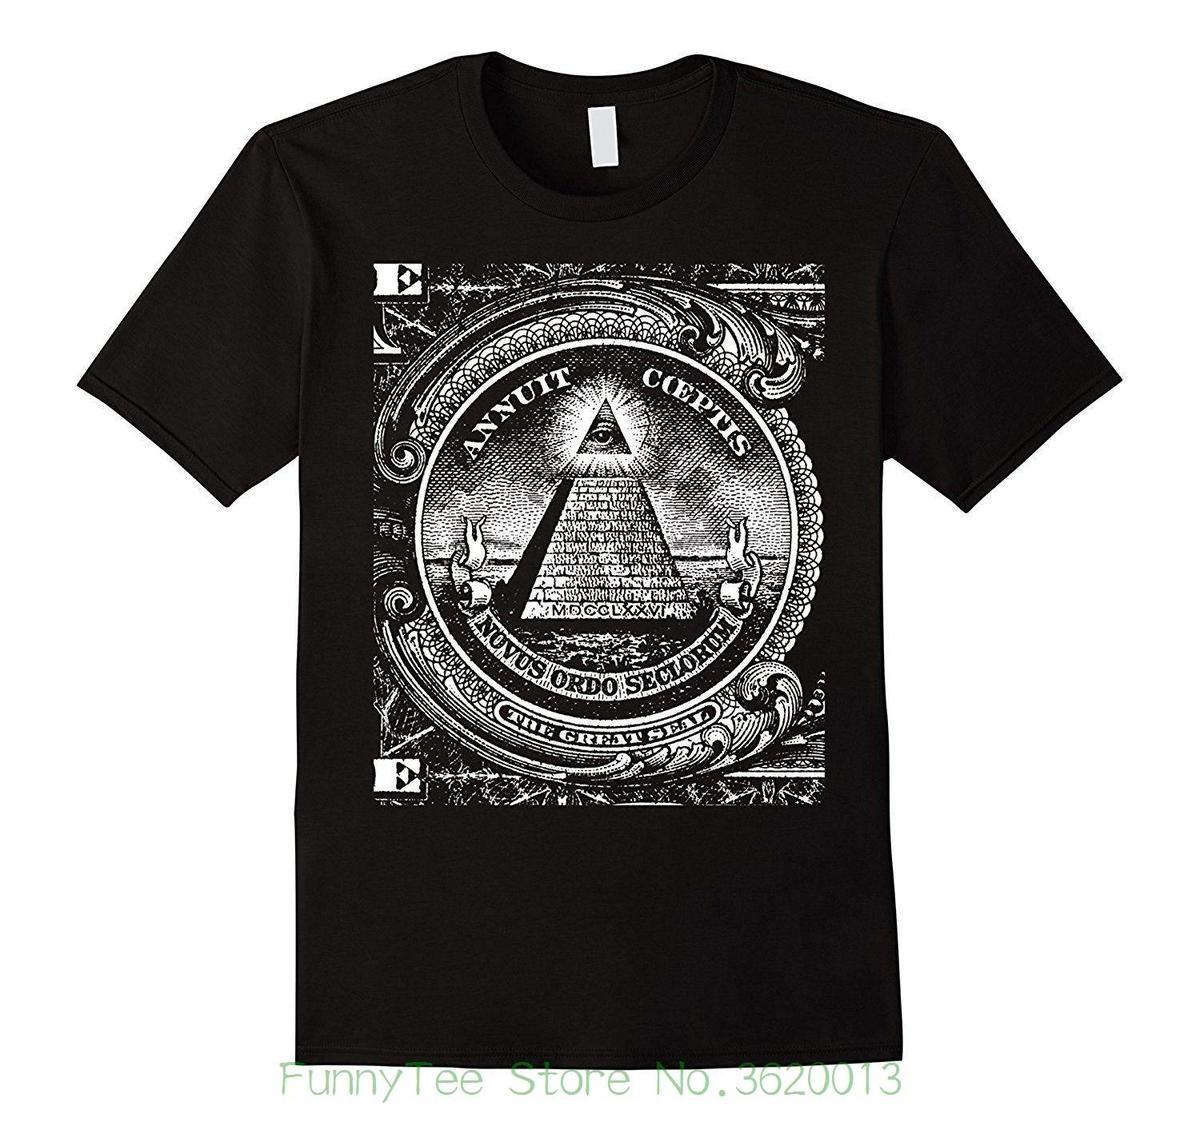 1c3b33c7f726 Mens Dollar All Seeing Eye Illuminati Freemasons Pyramid T Shirt Funny  Sports T Shirts Men T Shirts From Jie030, $14.67| DHgate.Com